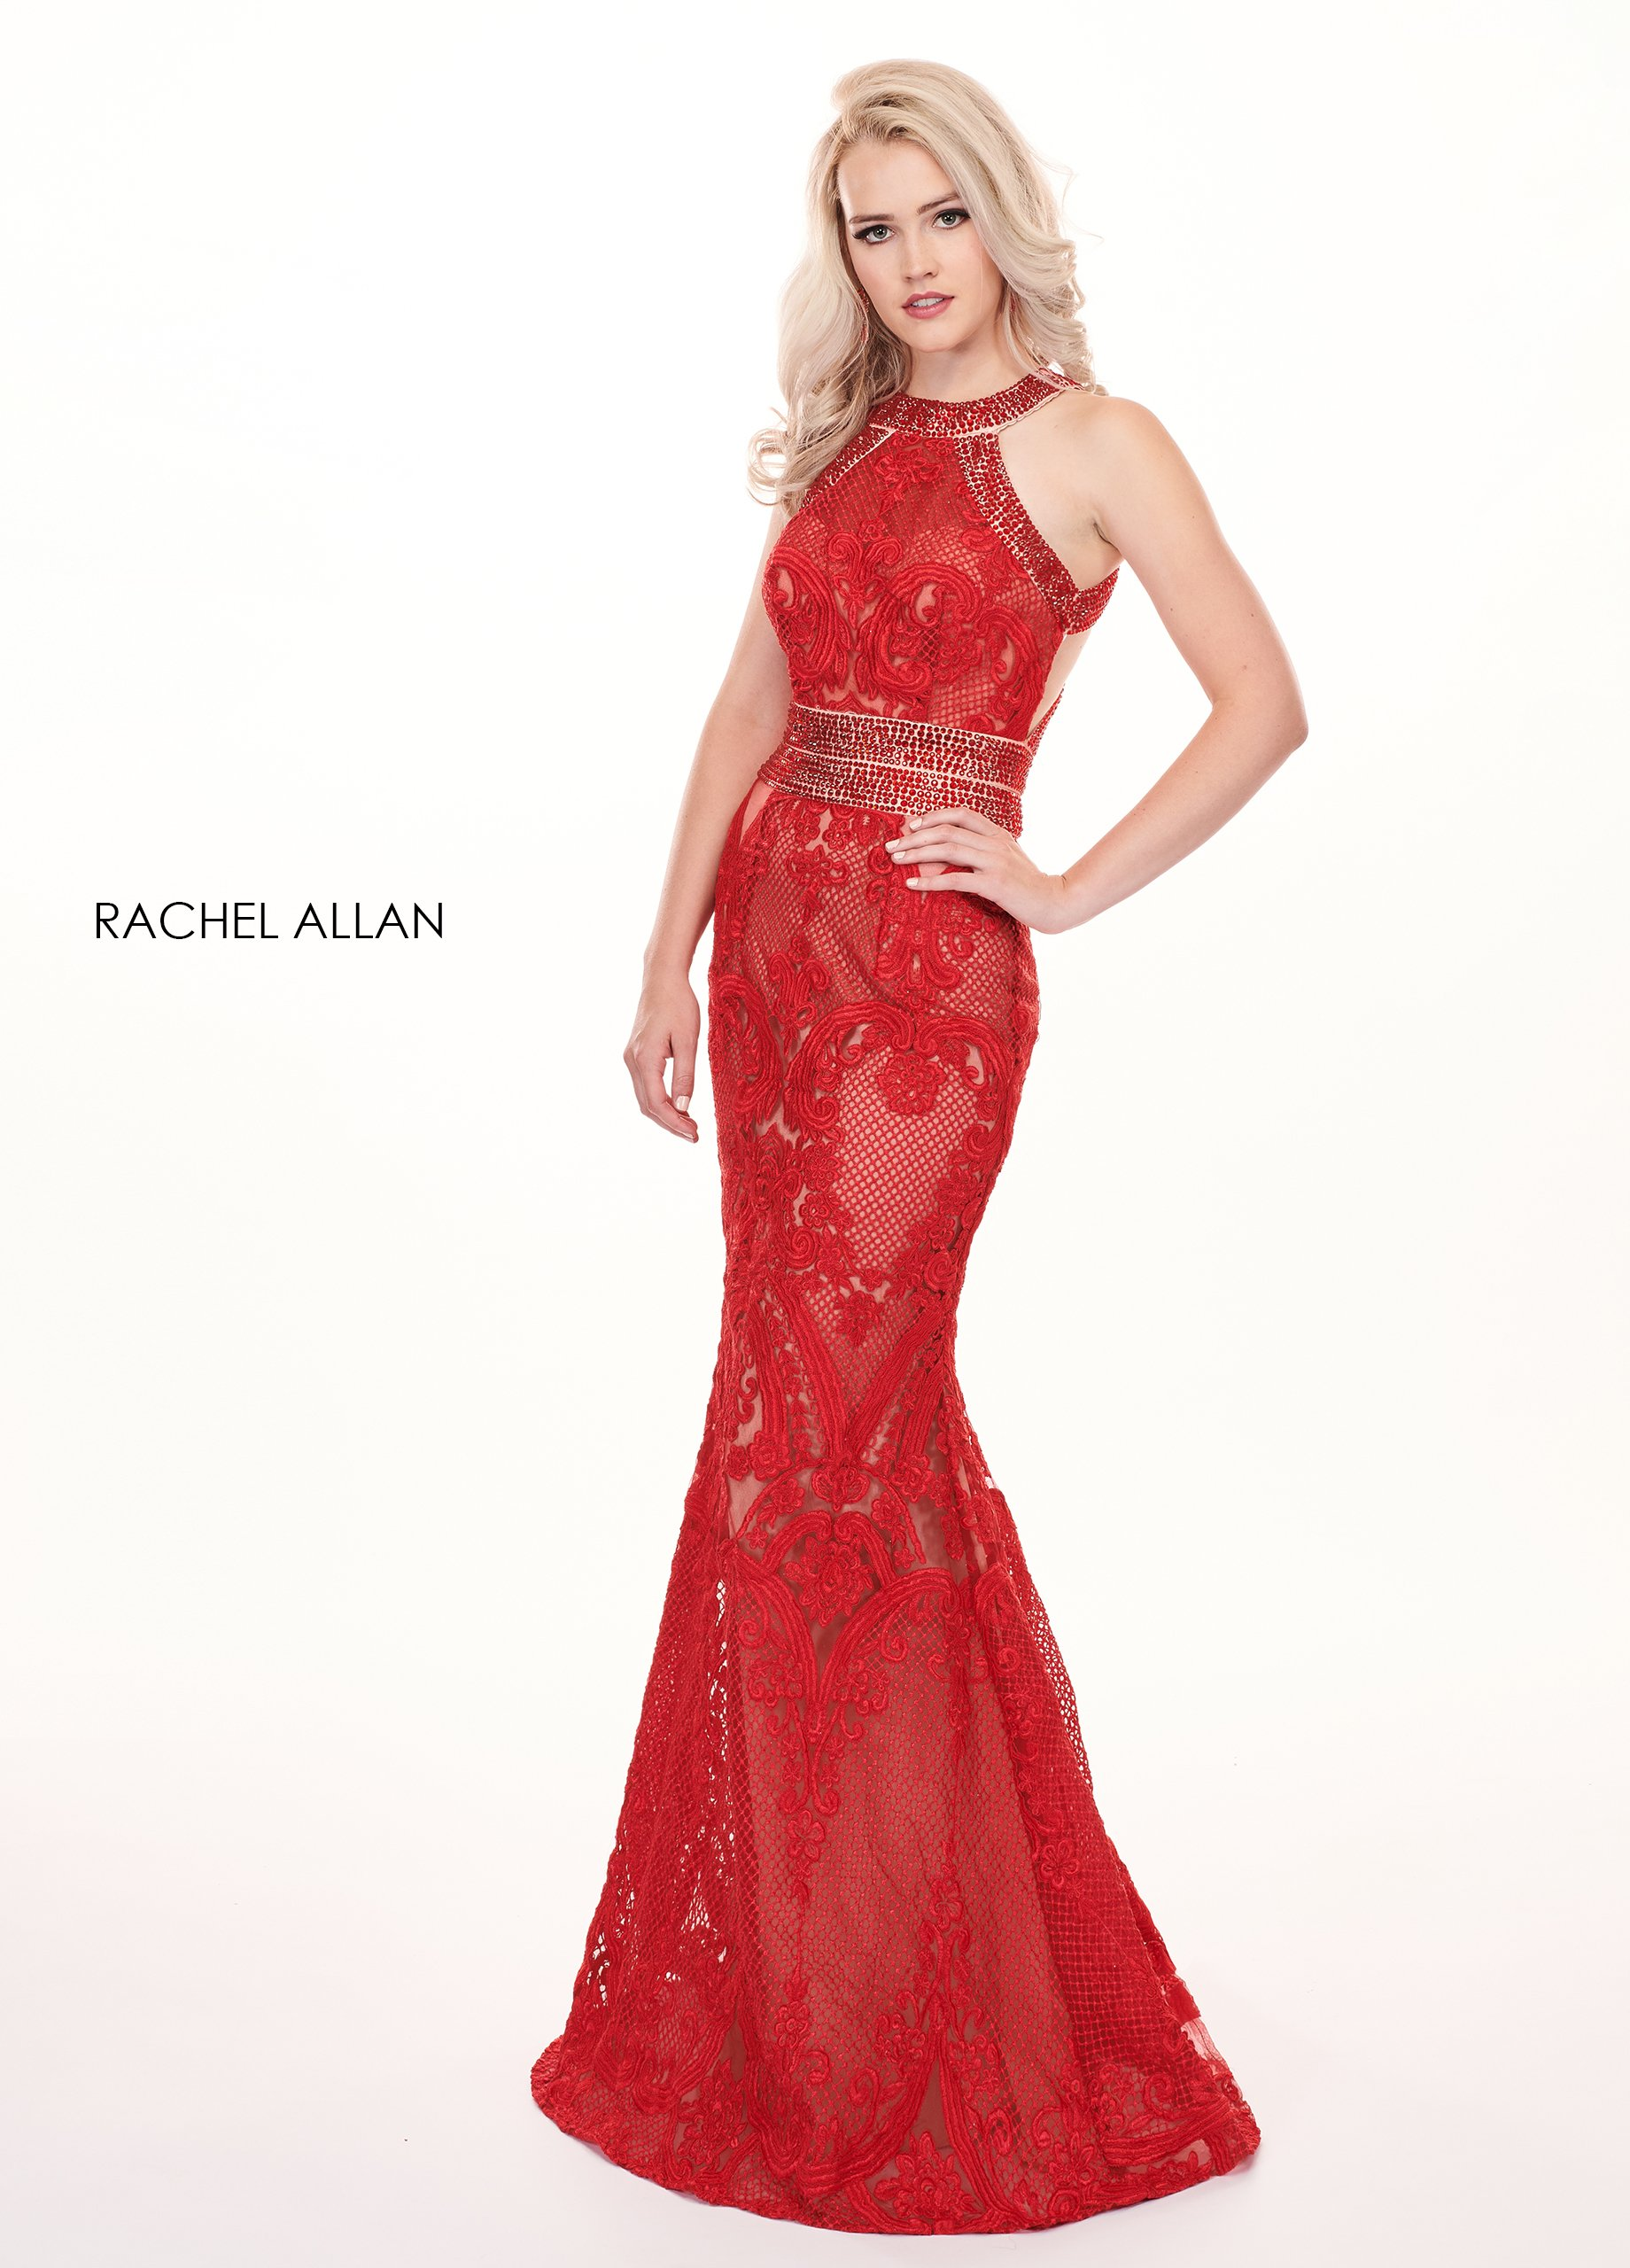 Halter Fit & Flare Prom Dresses in Red Color